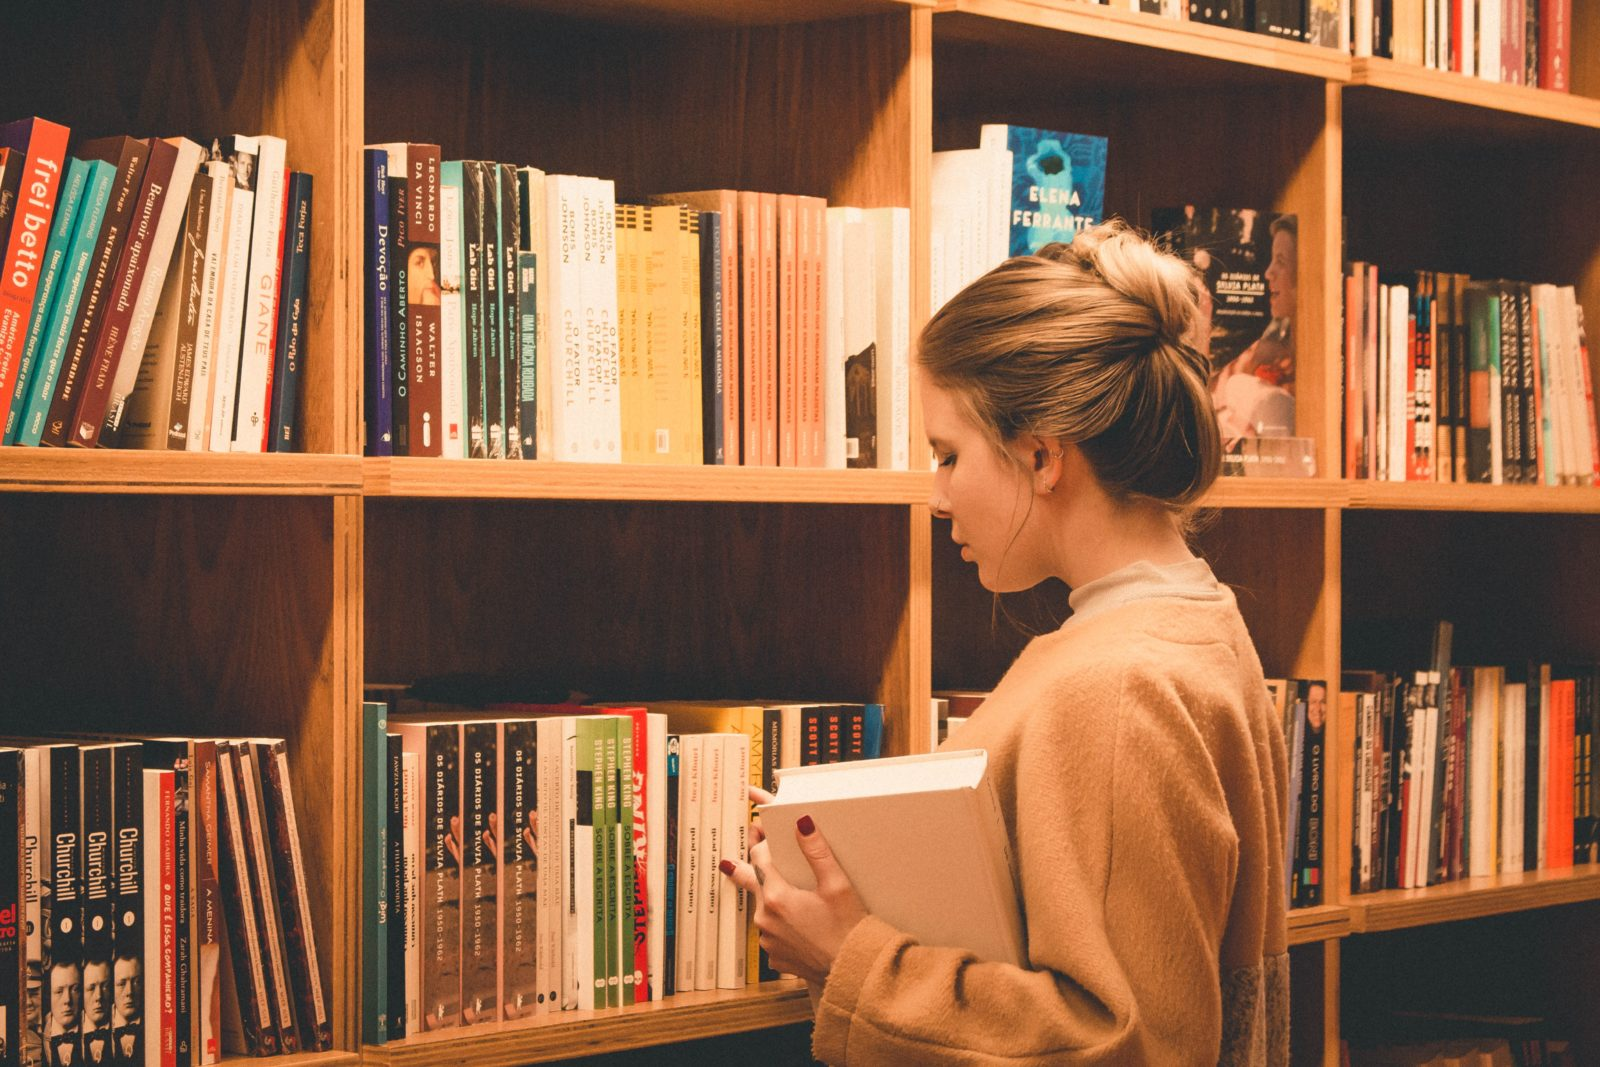 Girl Student in Library looking at Books